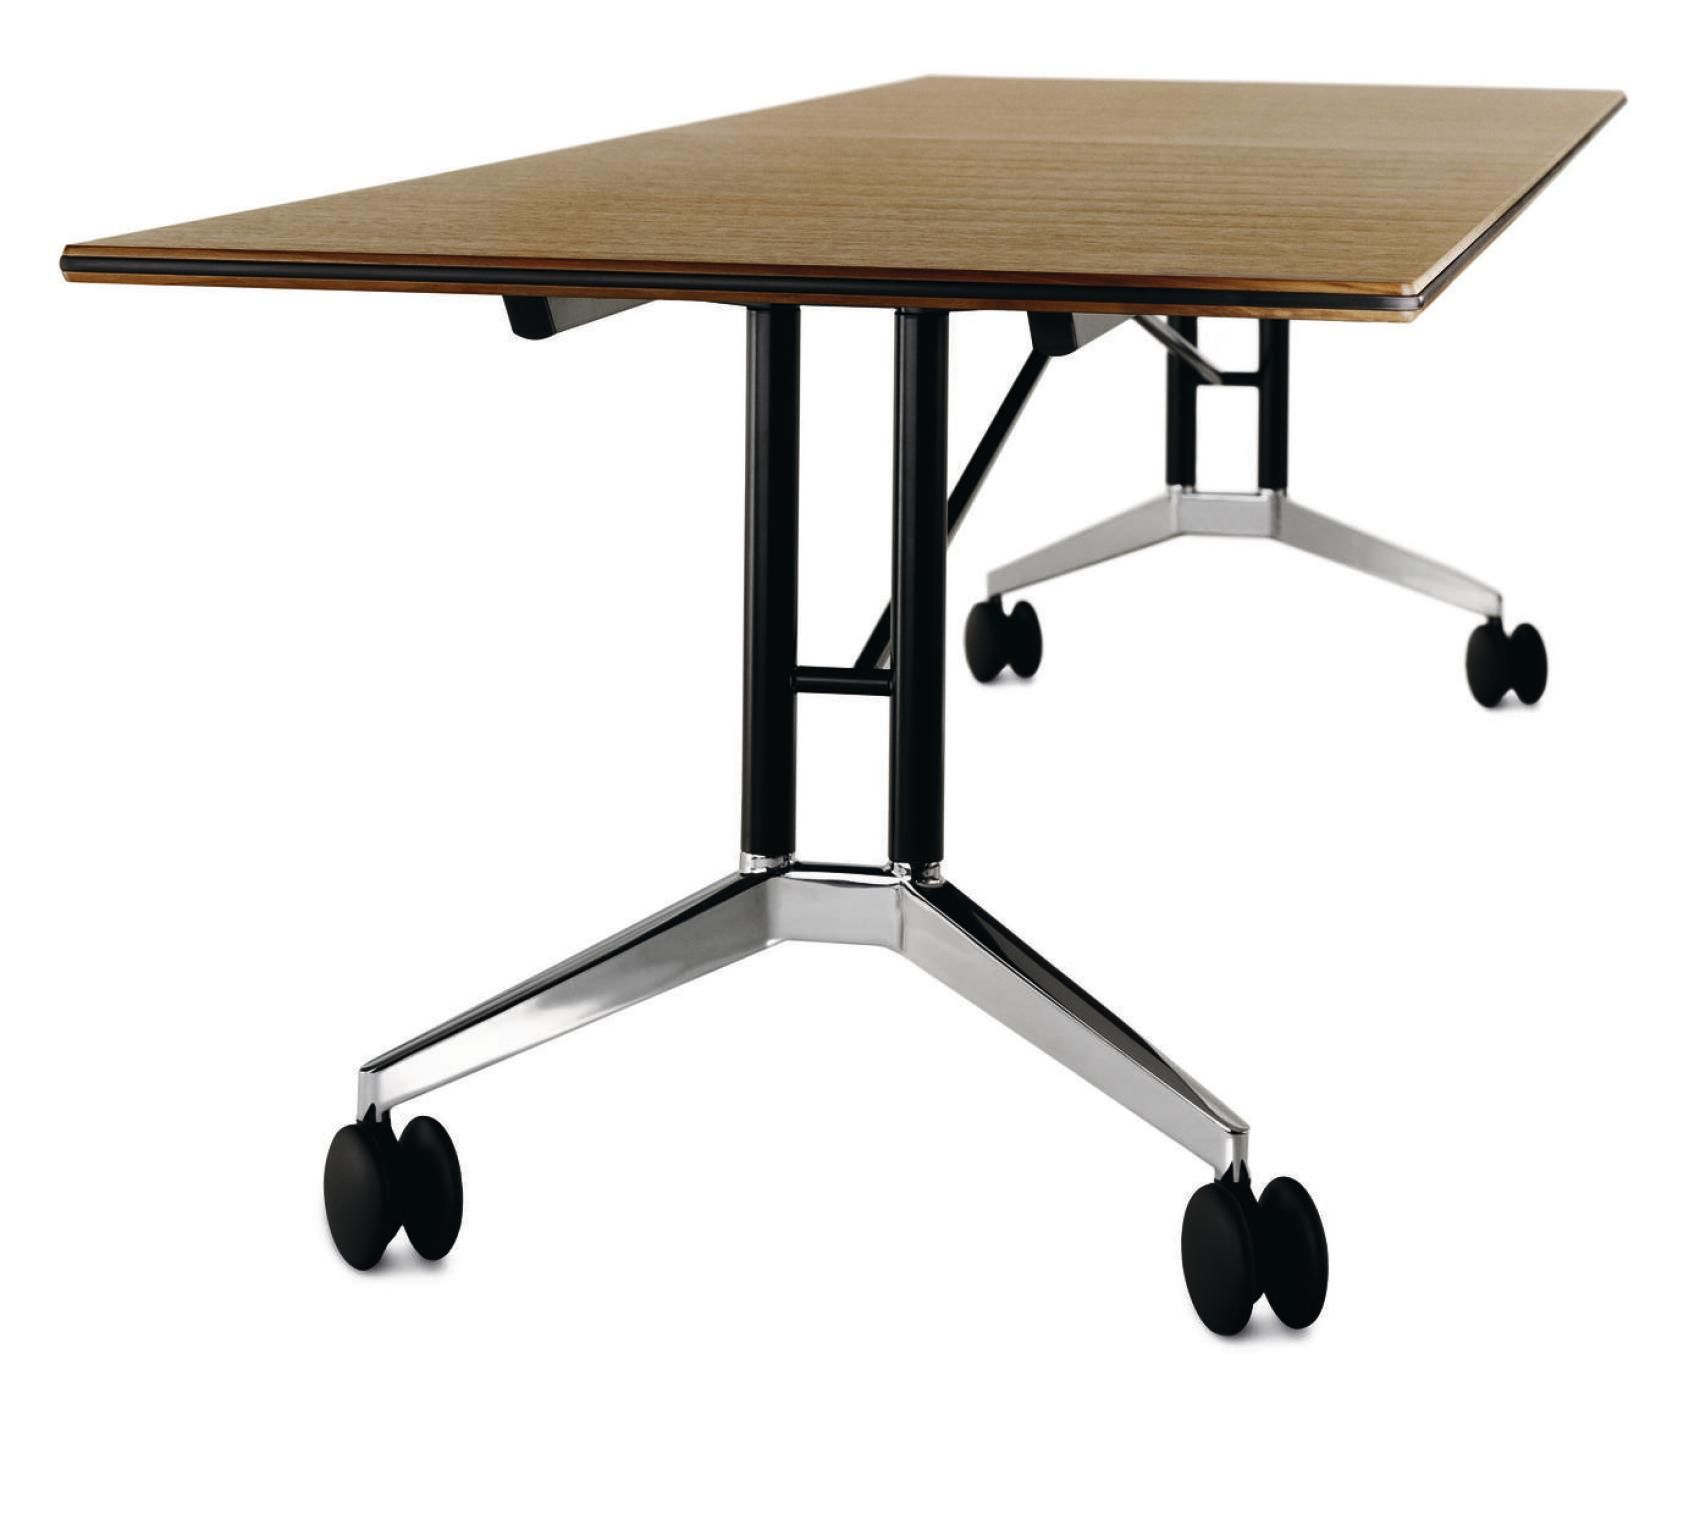 office tables on wheels. CONFAIR Folding Table | Foldable Conference Design: Andreas Störiko Dynamic. Space-saving. Superbly Designed. Office Tables On Wheels